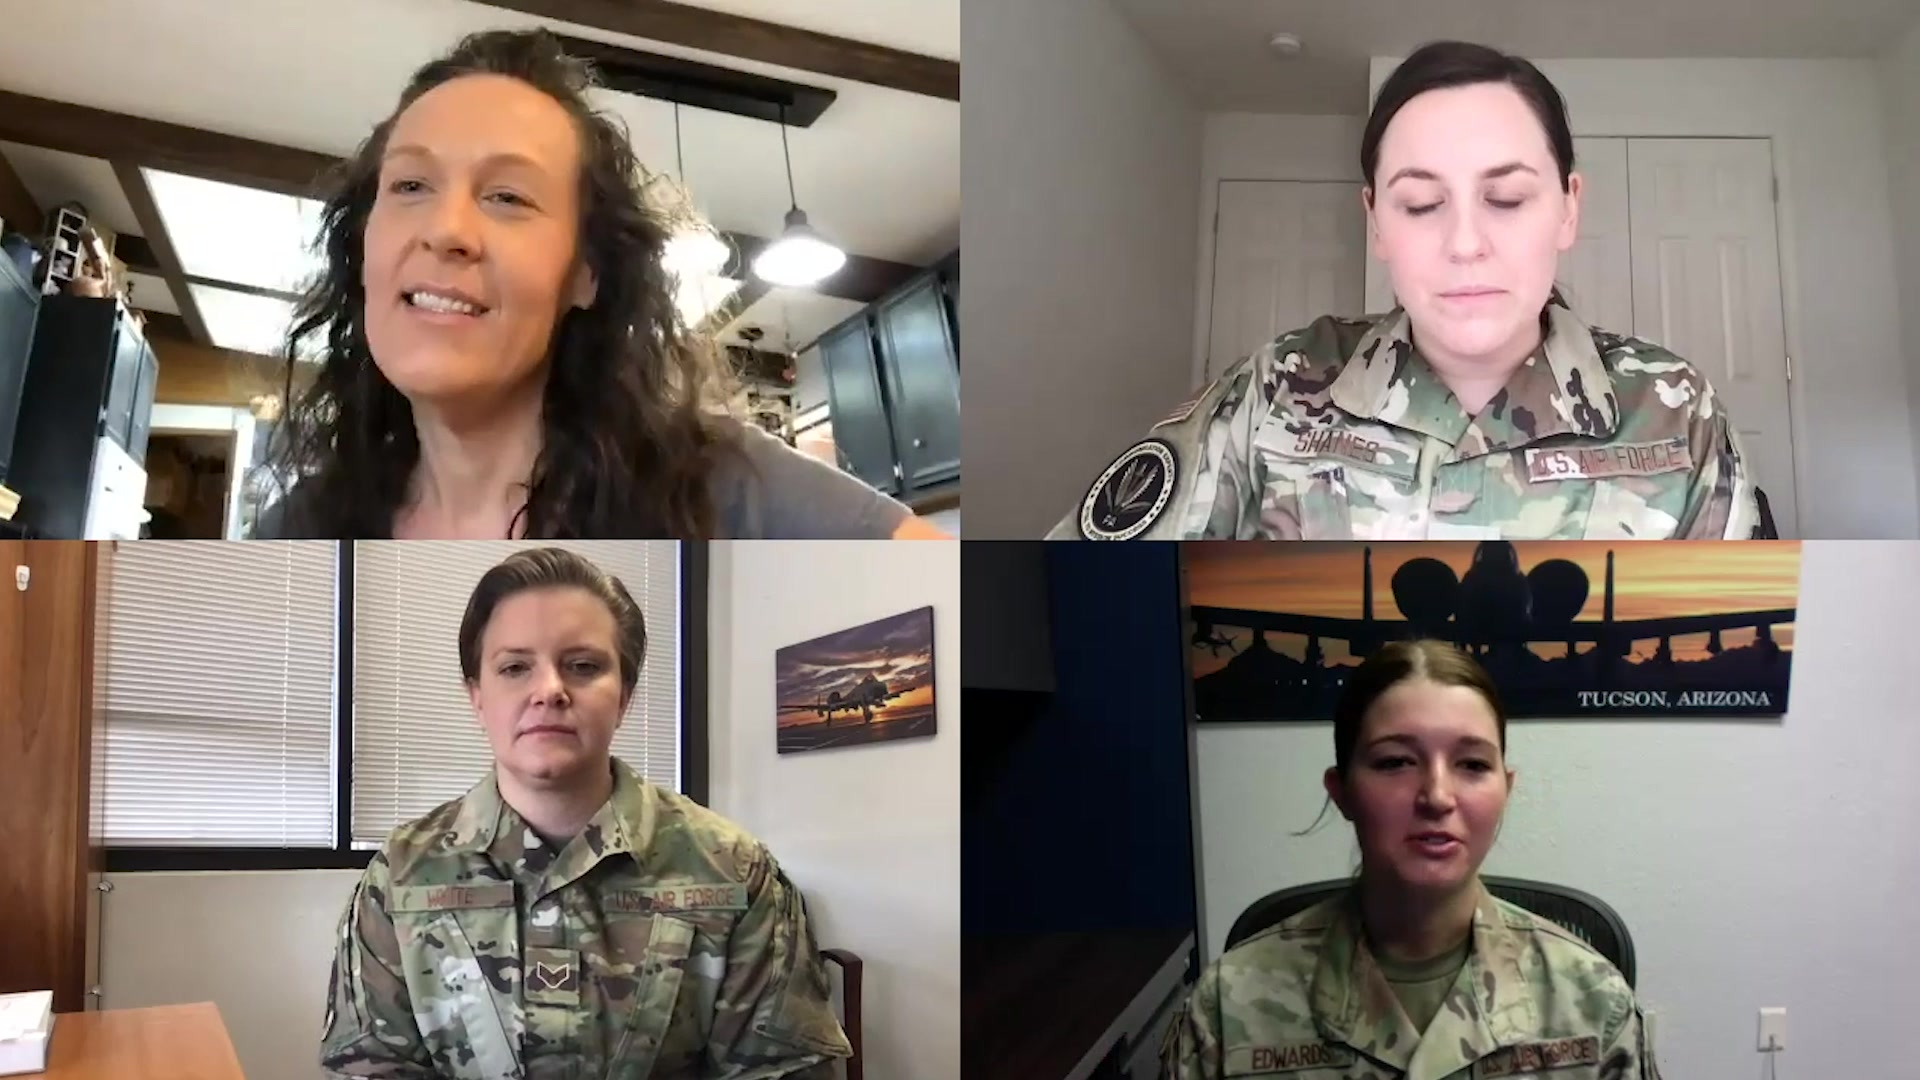 Video of first enlisted female A-10 crew chief, discussing her experience  with two current female A-10 crew chiefs.